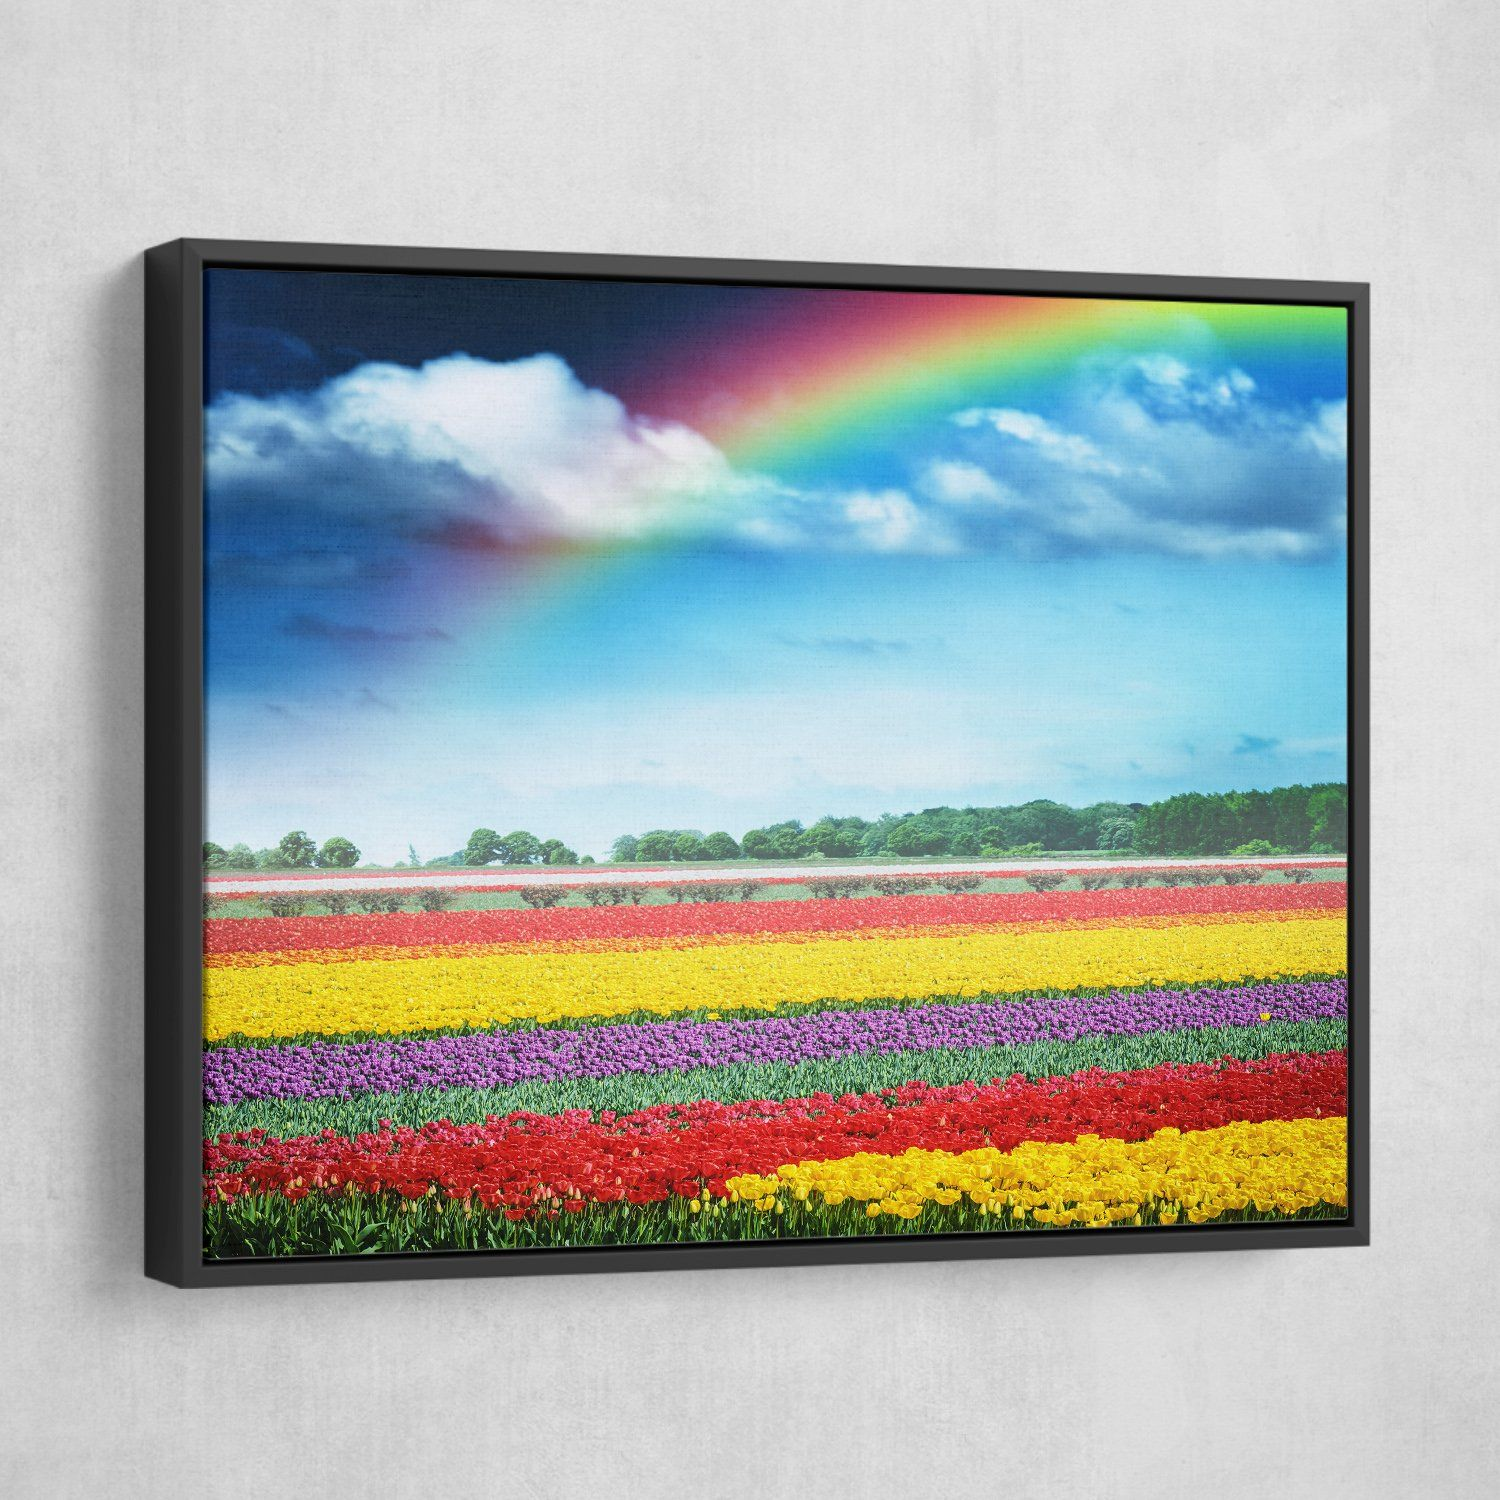 Rainbow Over Tulips wall art black frame